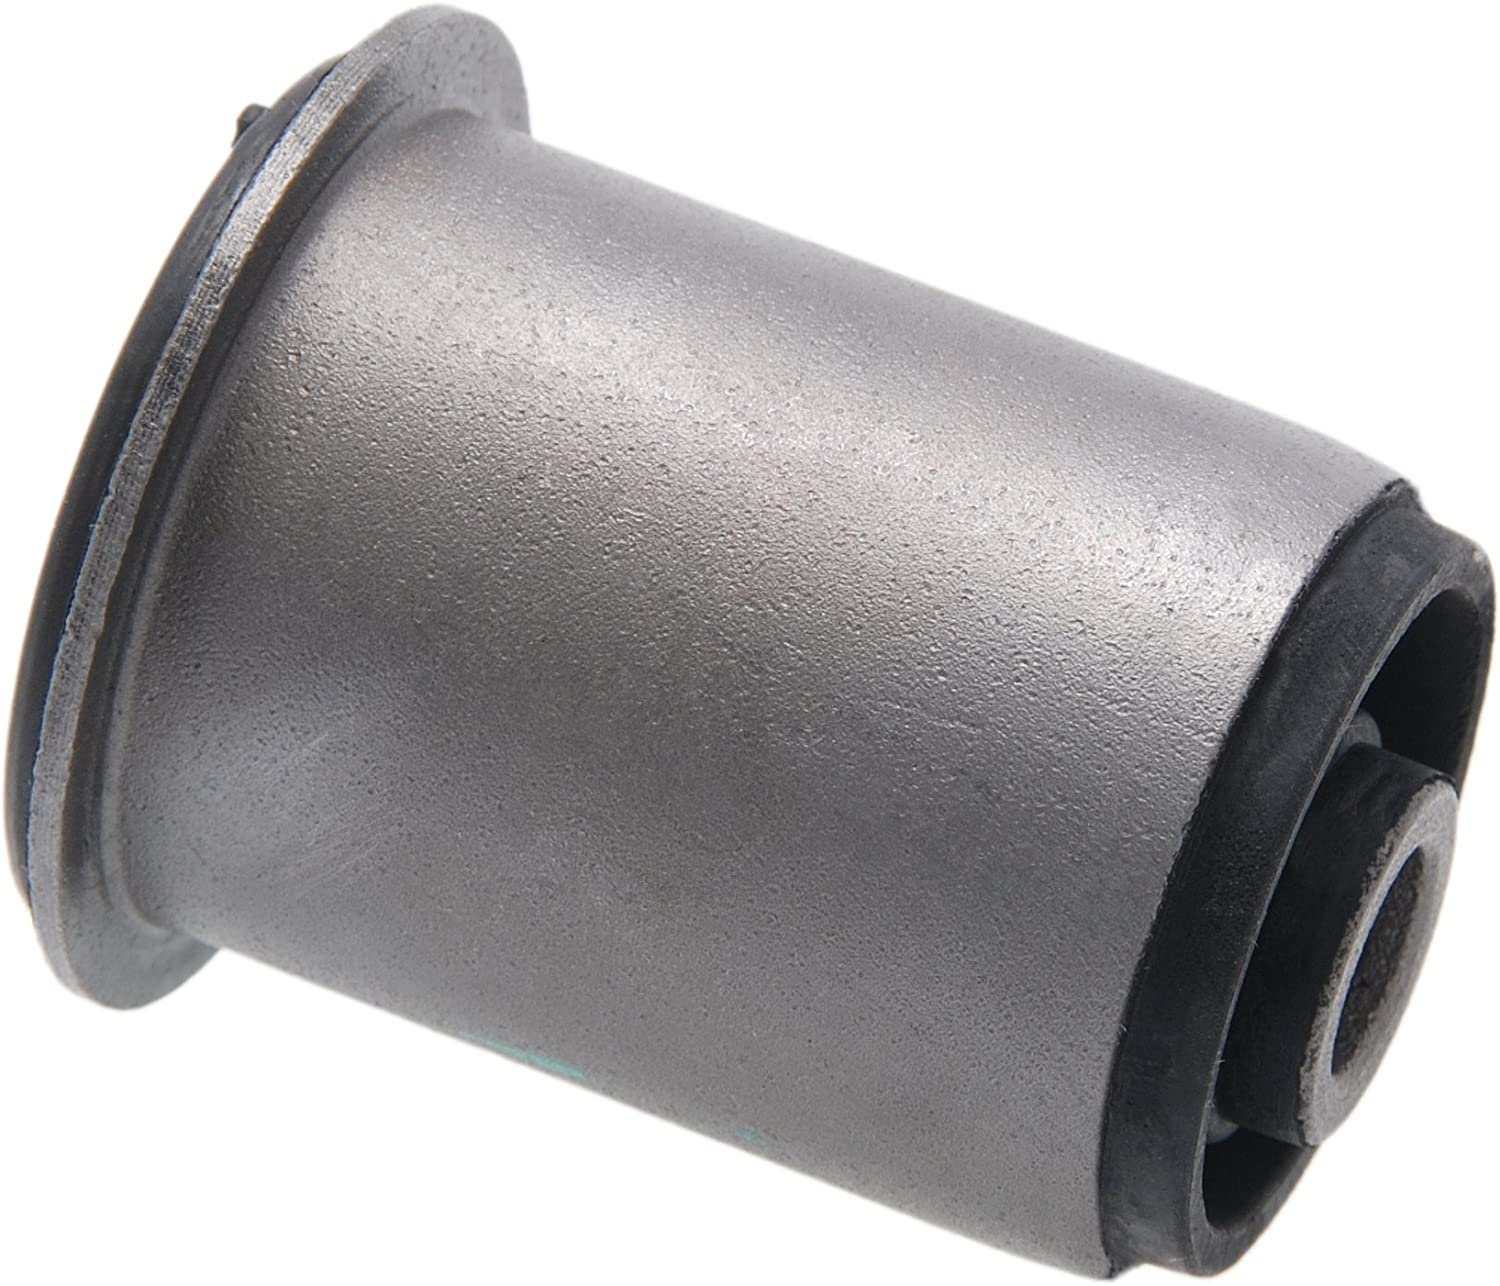 55476Wd100 - Arm Bushing for Differential For Nissan Mount Philadelphia Mall Rapid rise